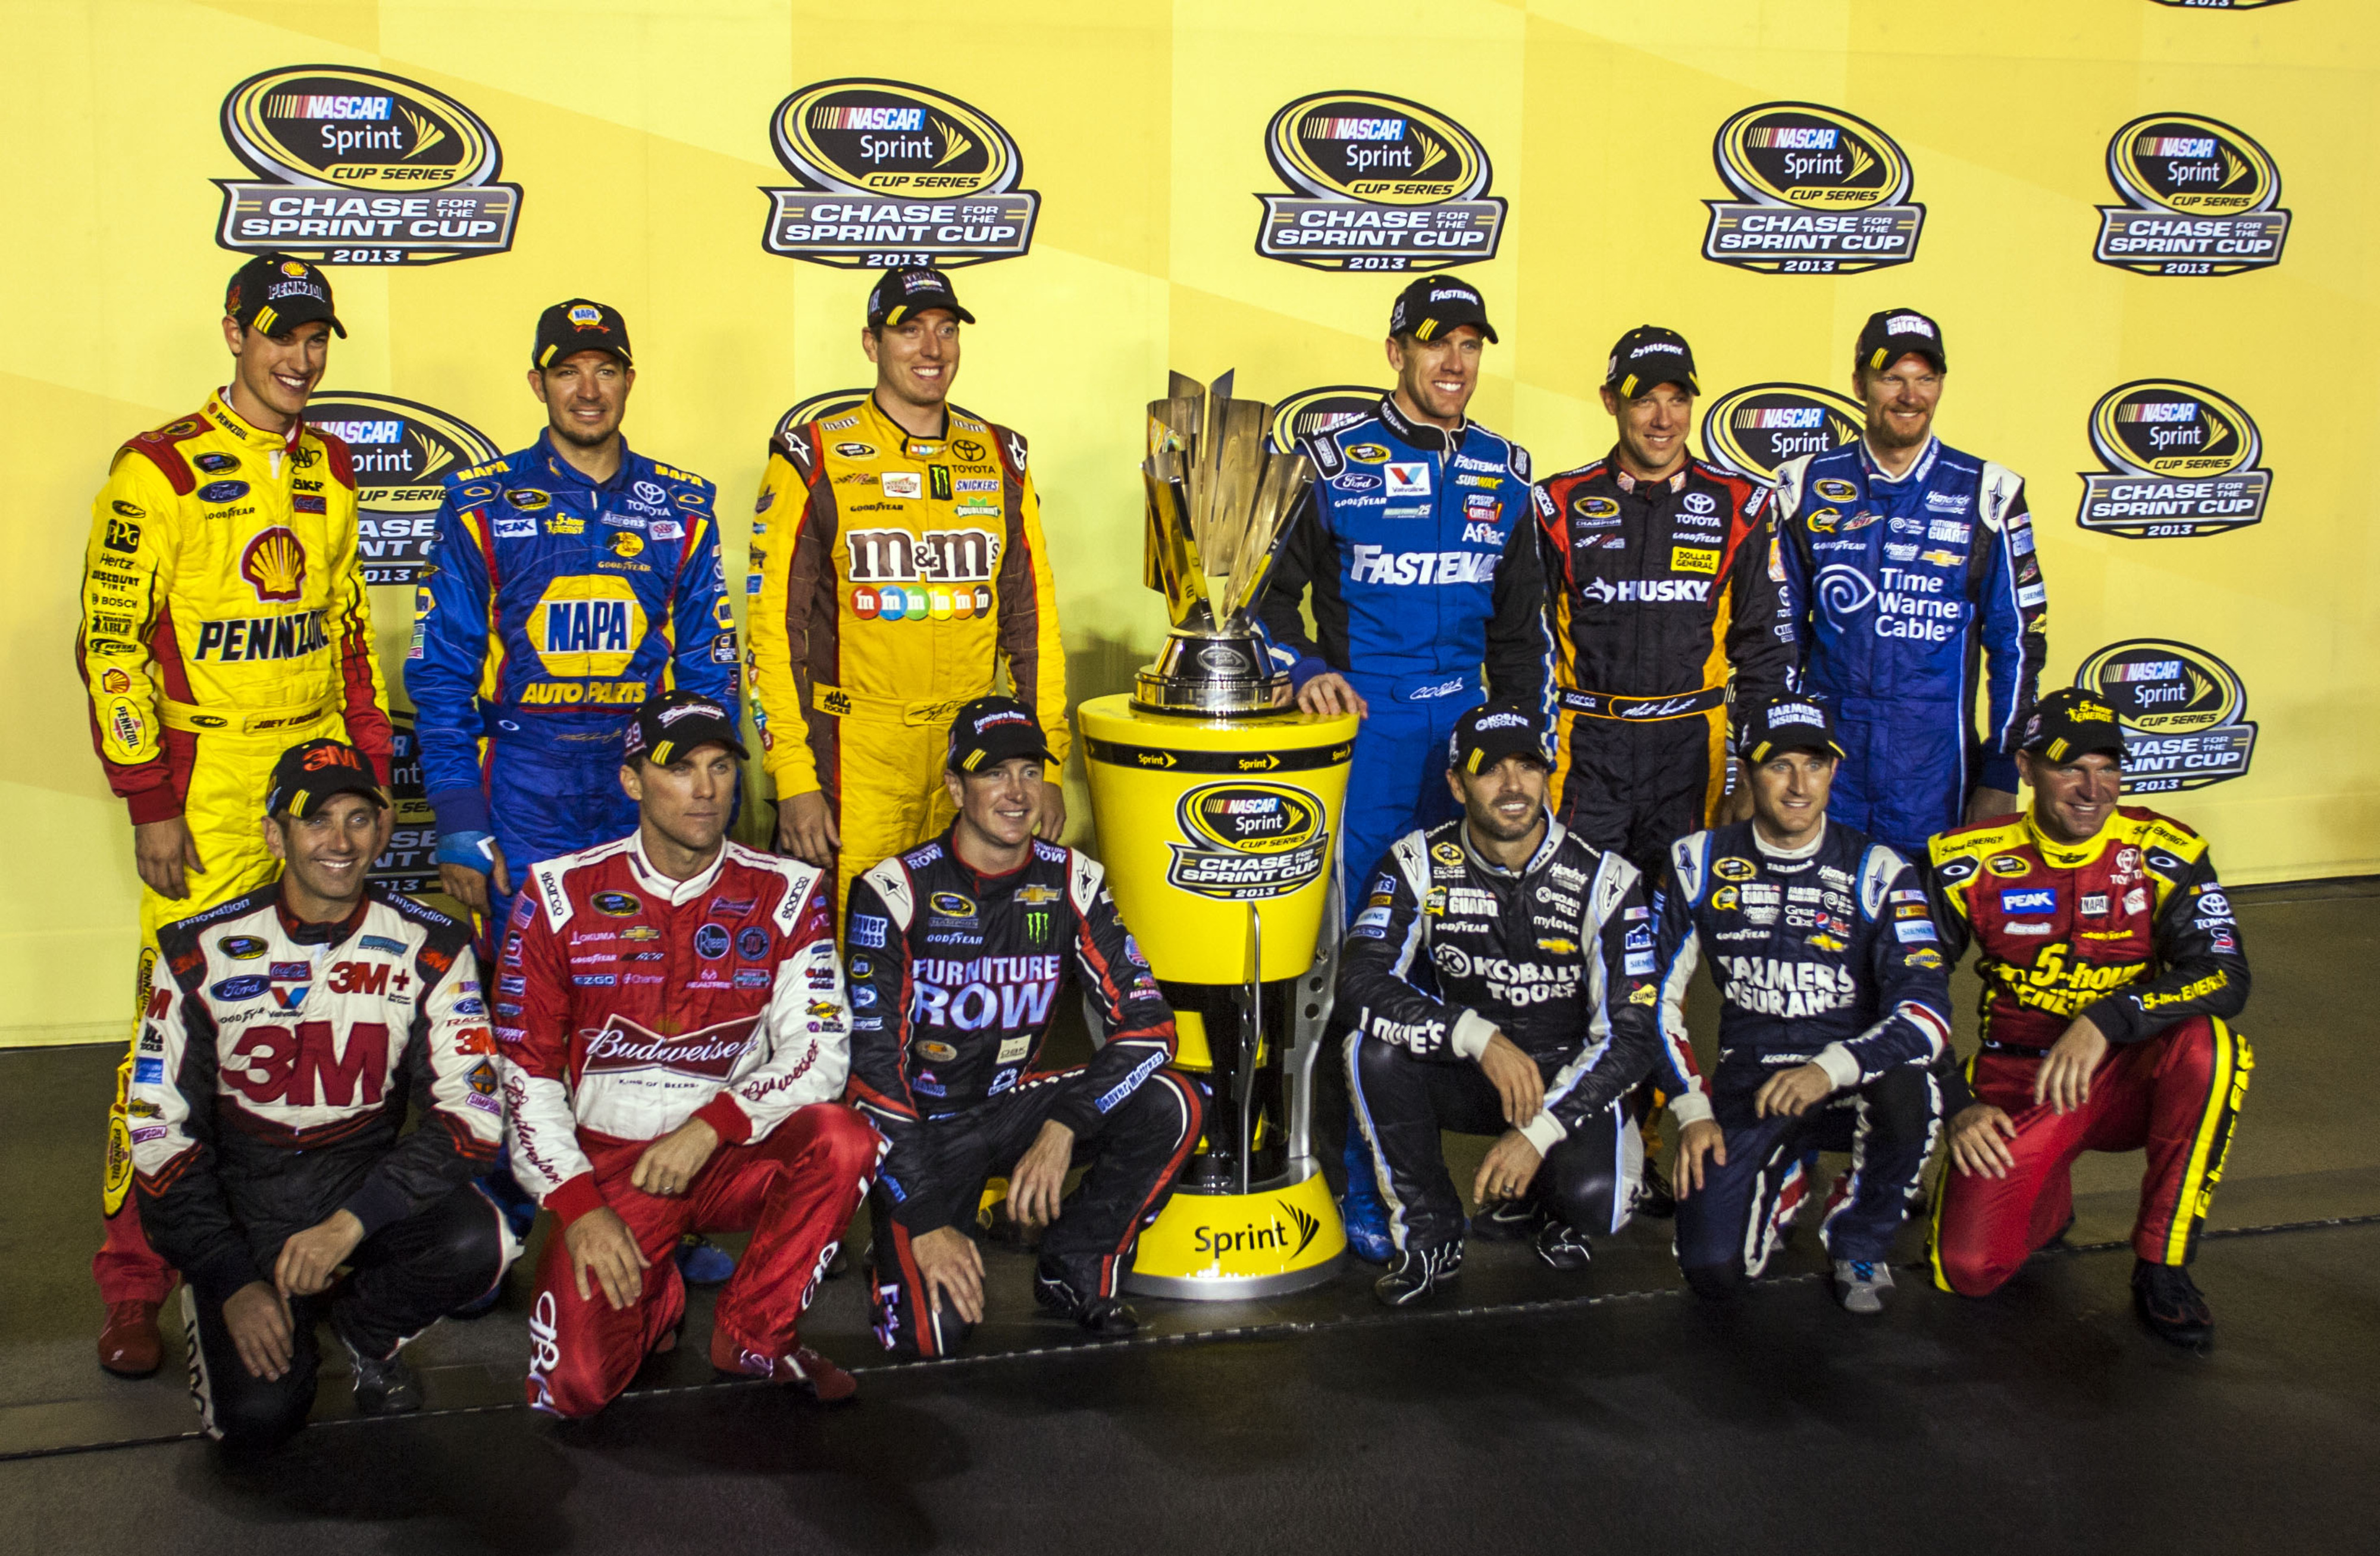 NASCAR's reported changes to Chase, points formats a step too far